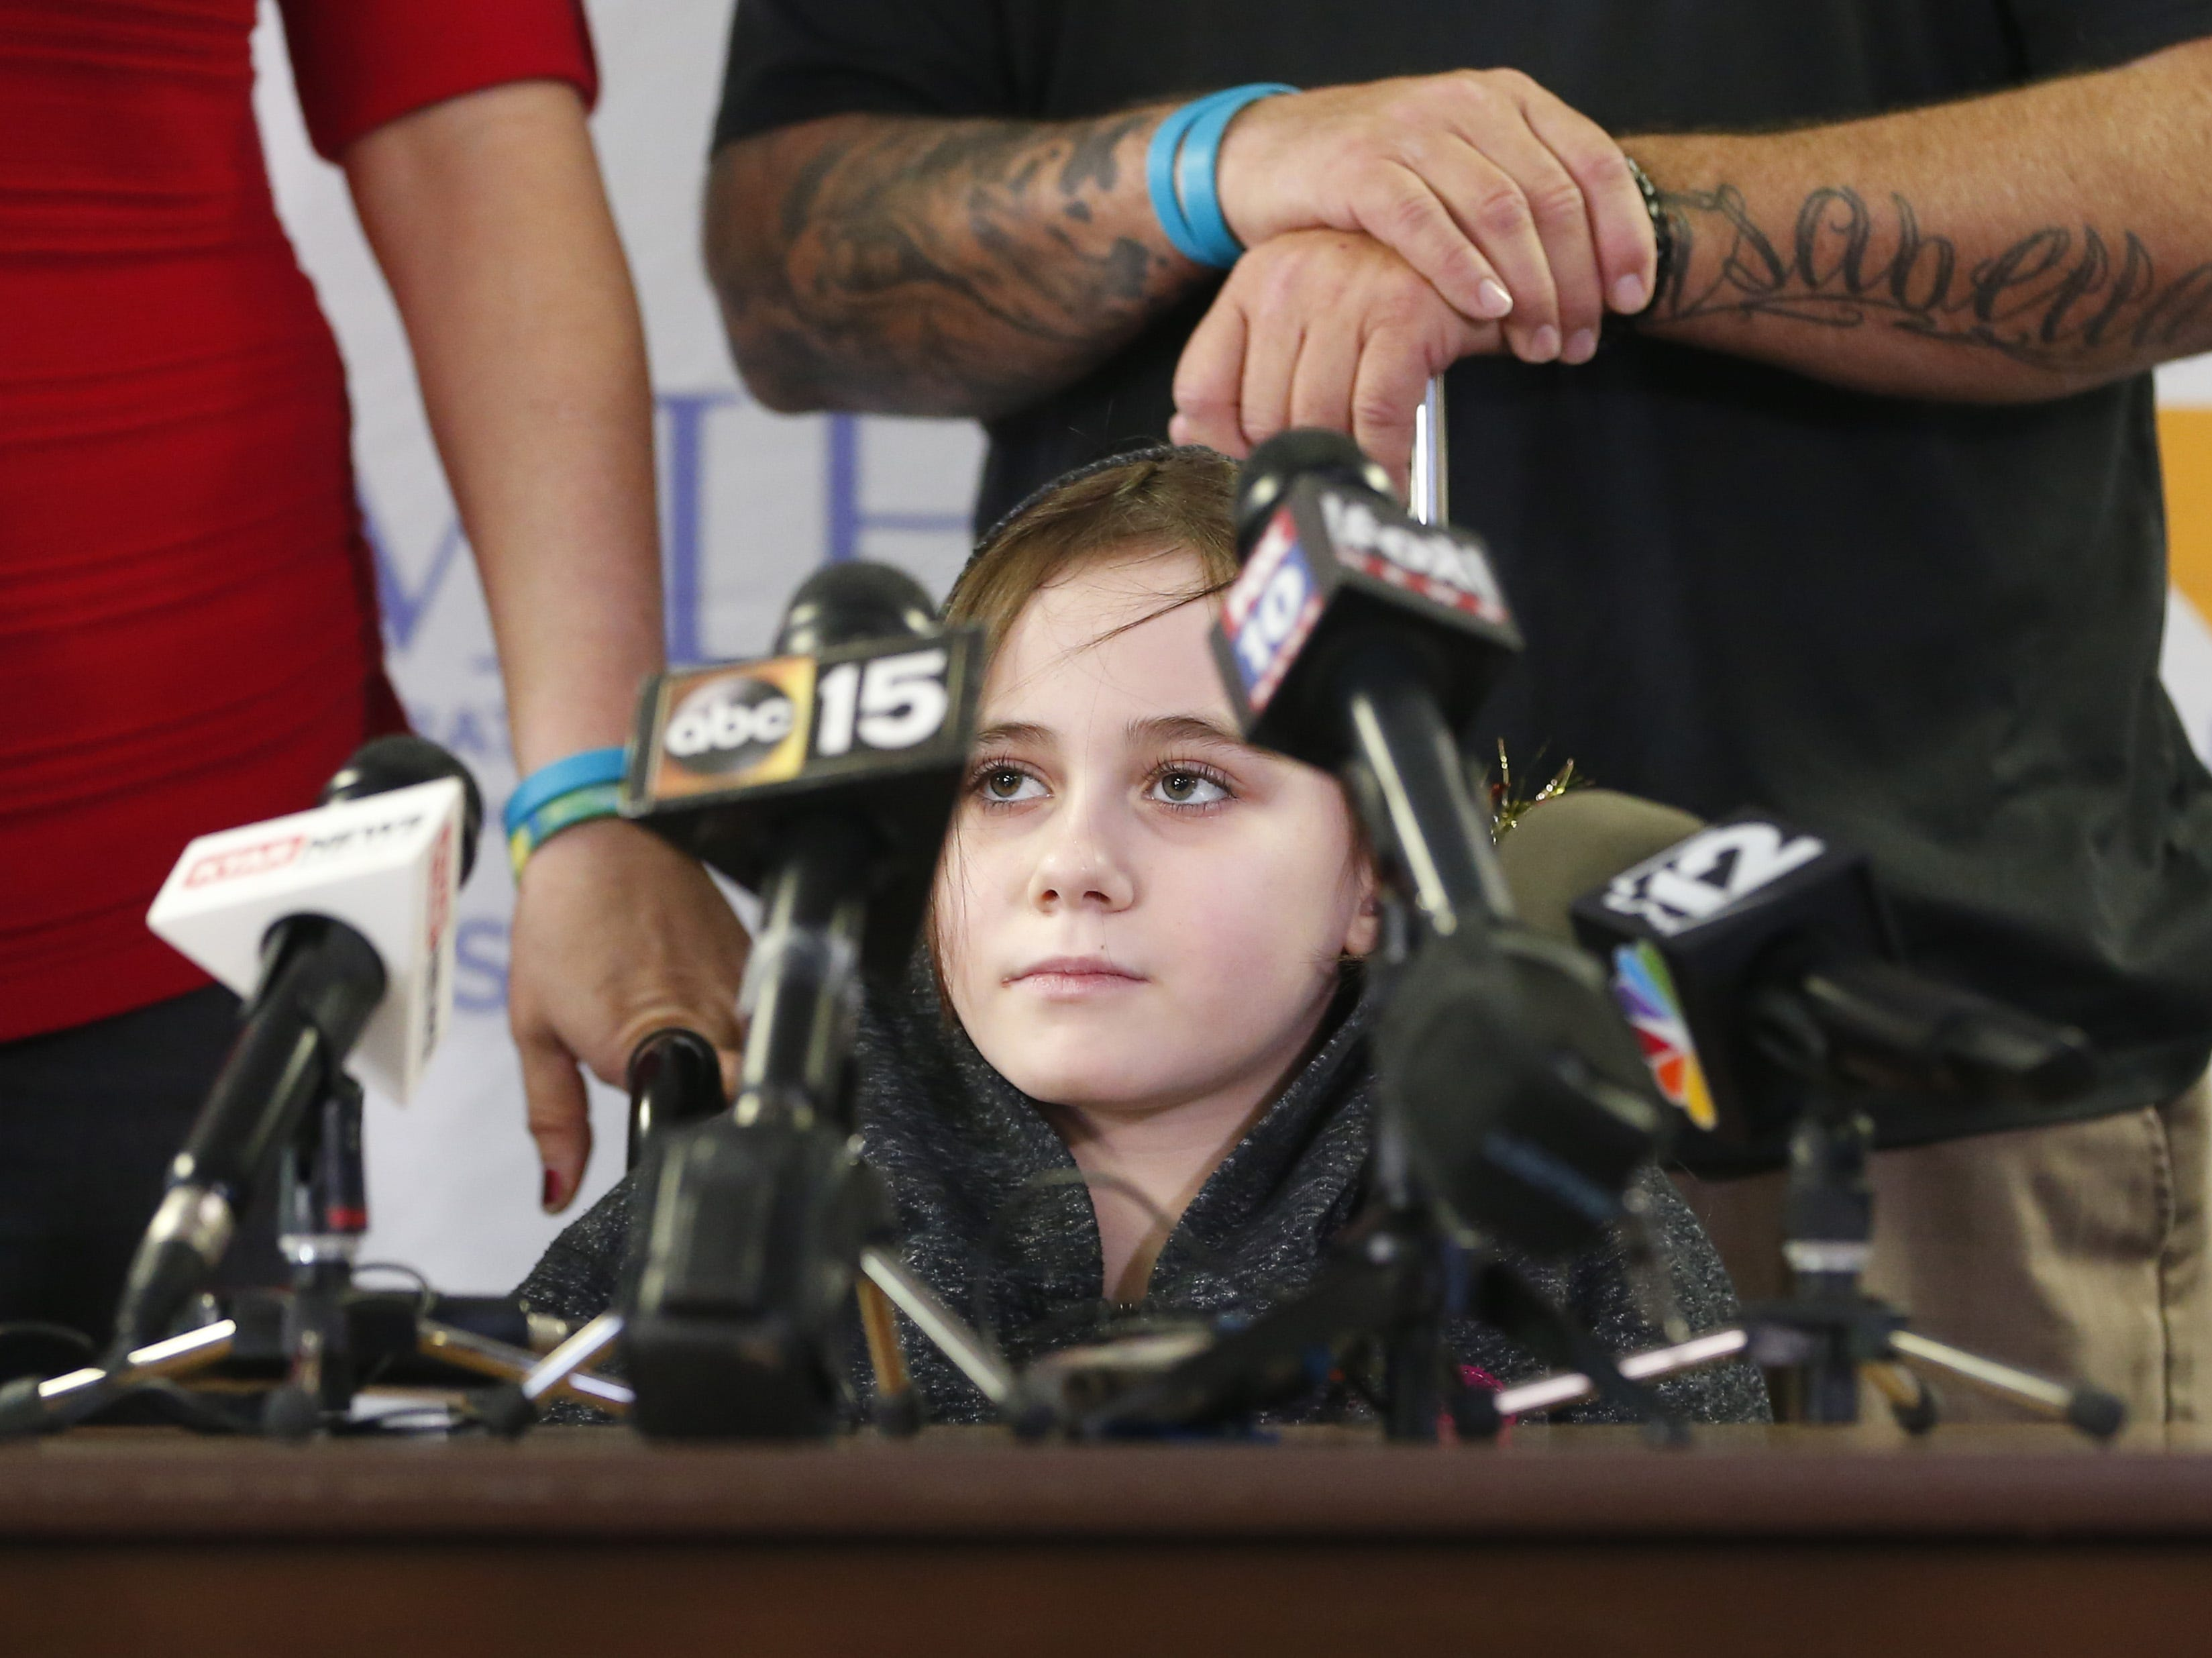 Isabella McCune answers questions during a press conference at the Arizona Burn Center in Phoenix on Dec. 17, 2018. The 9-year-old was discharged nine months to the day after she was severely burned in a home accident.